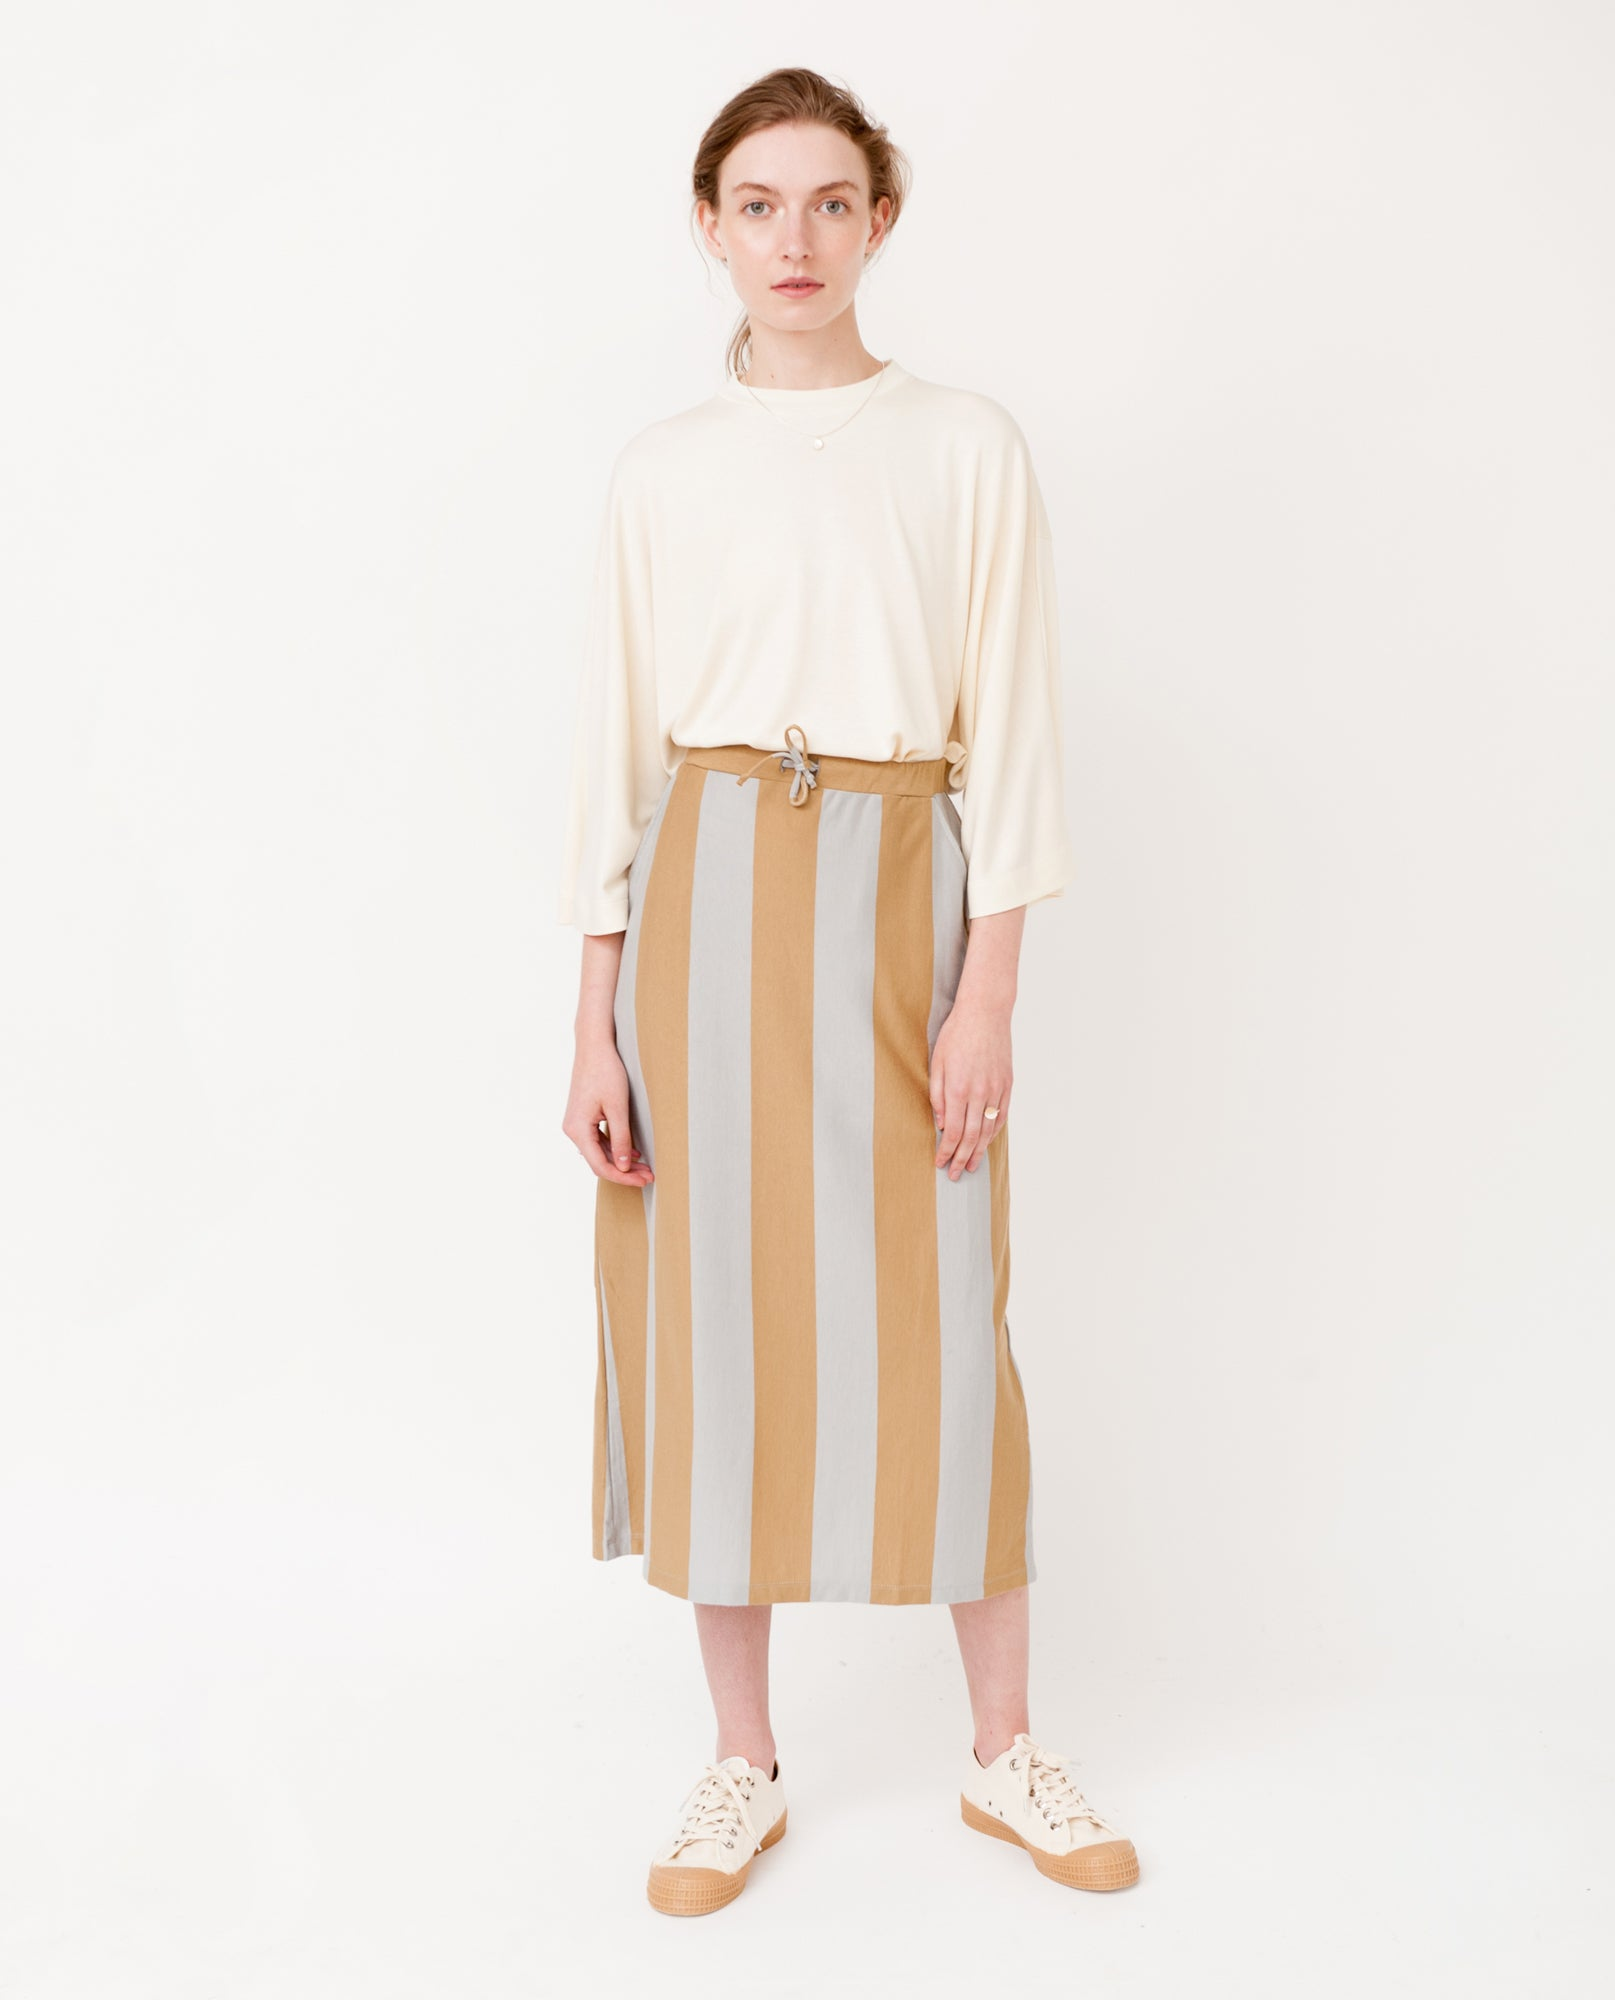 ANA-SOPHIA Organic Cotton Skirt In Stone And Flint